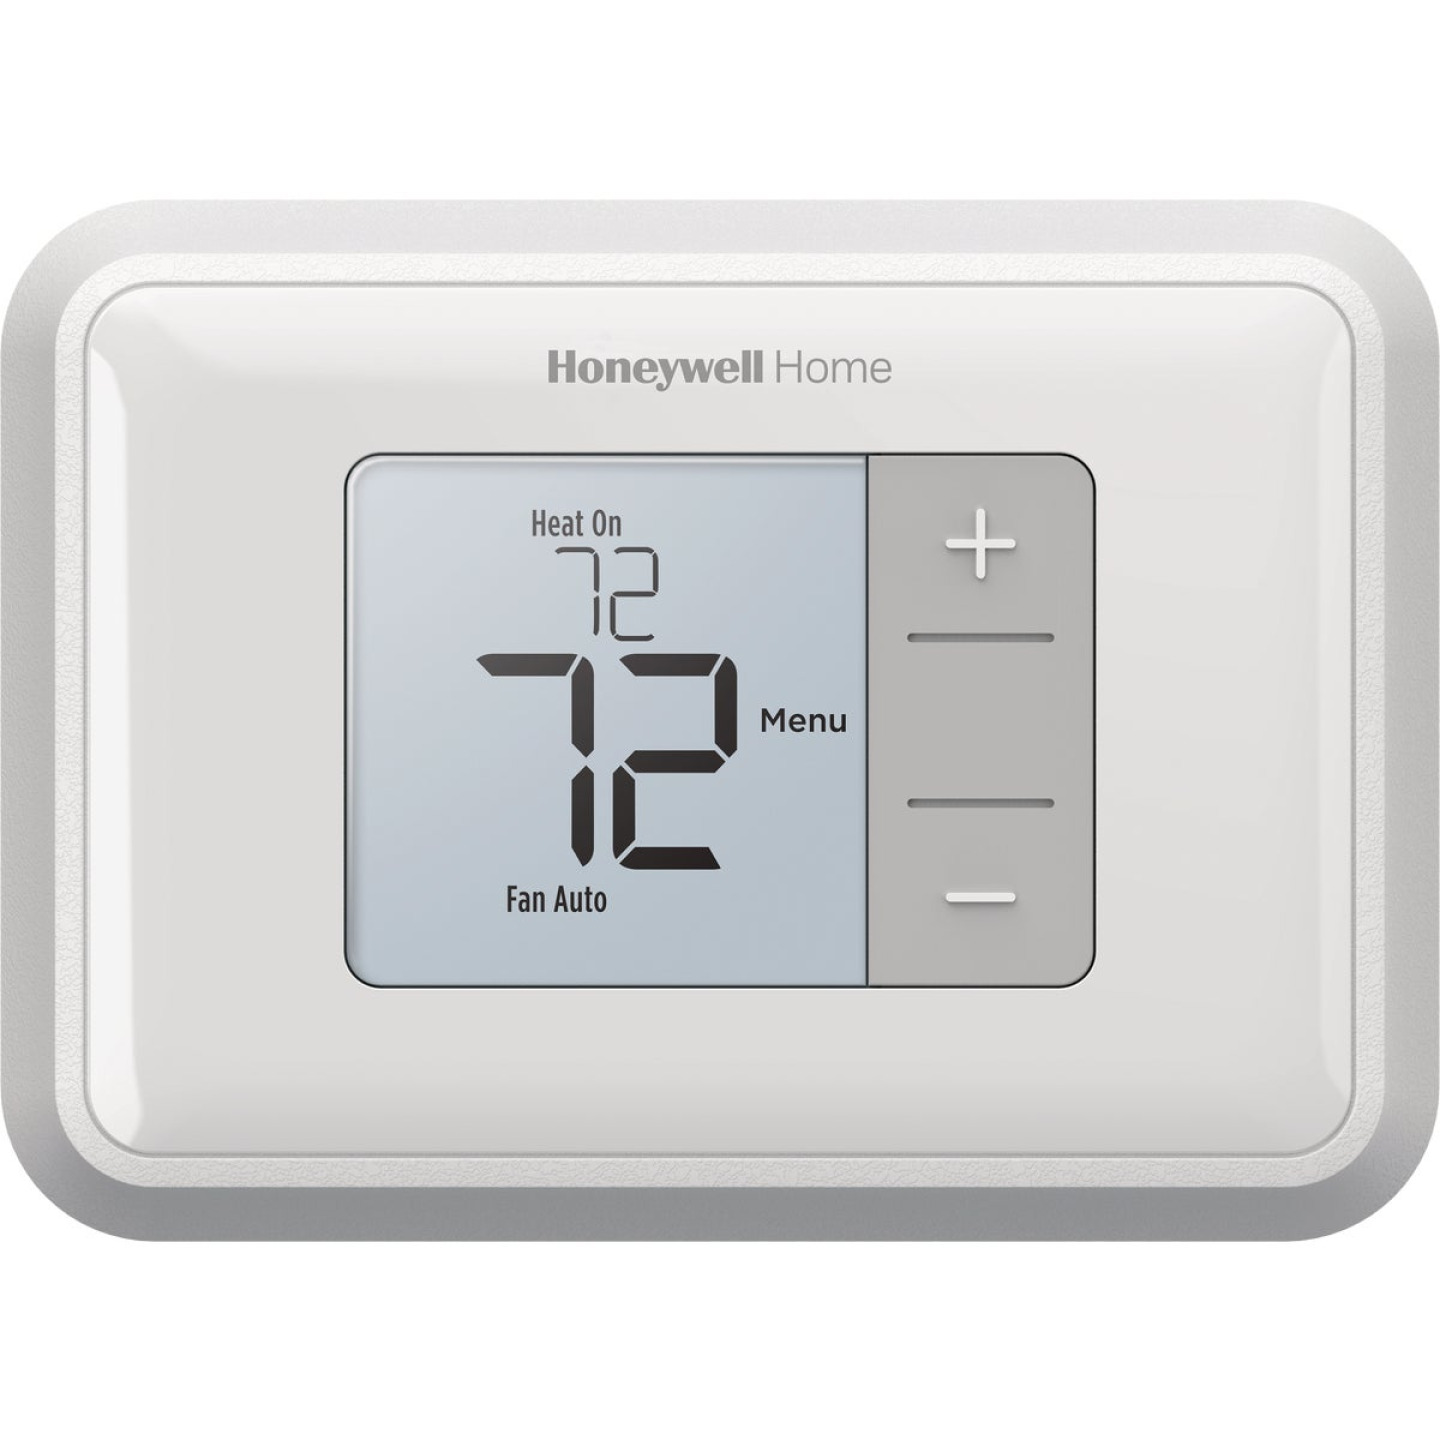 Honeywell Non-Programmable White Digital Thermostat Image 1